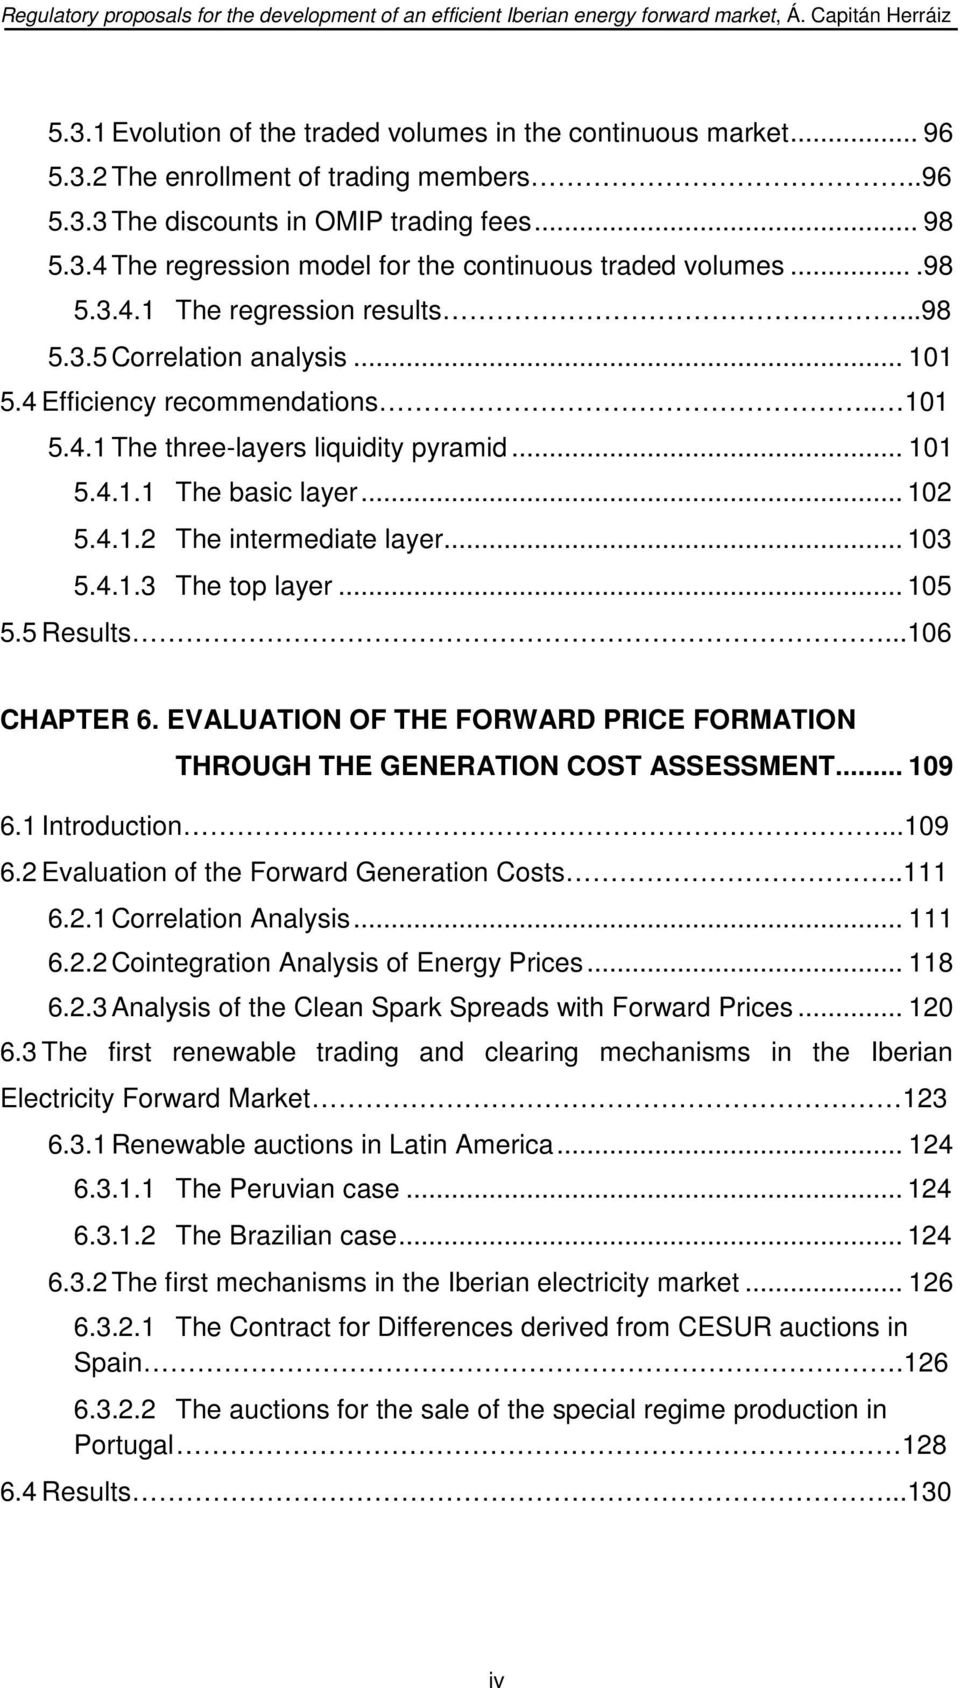 .. 103 5.4.1.3 The top layer... 105 5.5 Results...106 CHAPTER 6. EVALUATION OF THE FORWARD PRICE FORMATION THROUGH THE GENERATION COST ASSESSMENT... 109 6.1 Introduction...109 6.2 Evaluation of the Forward Generation Costs.